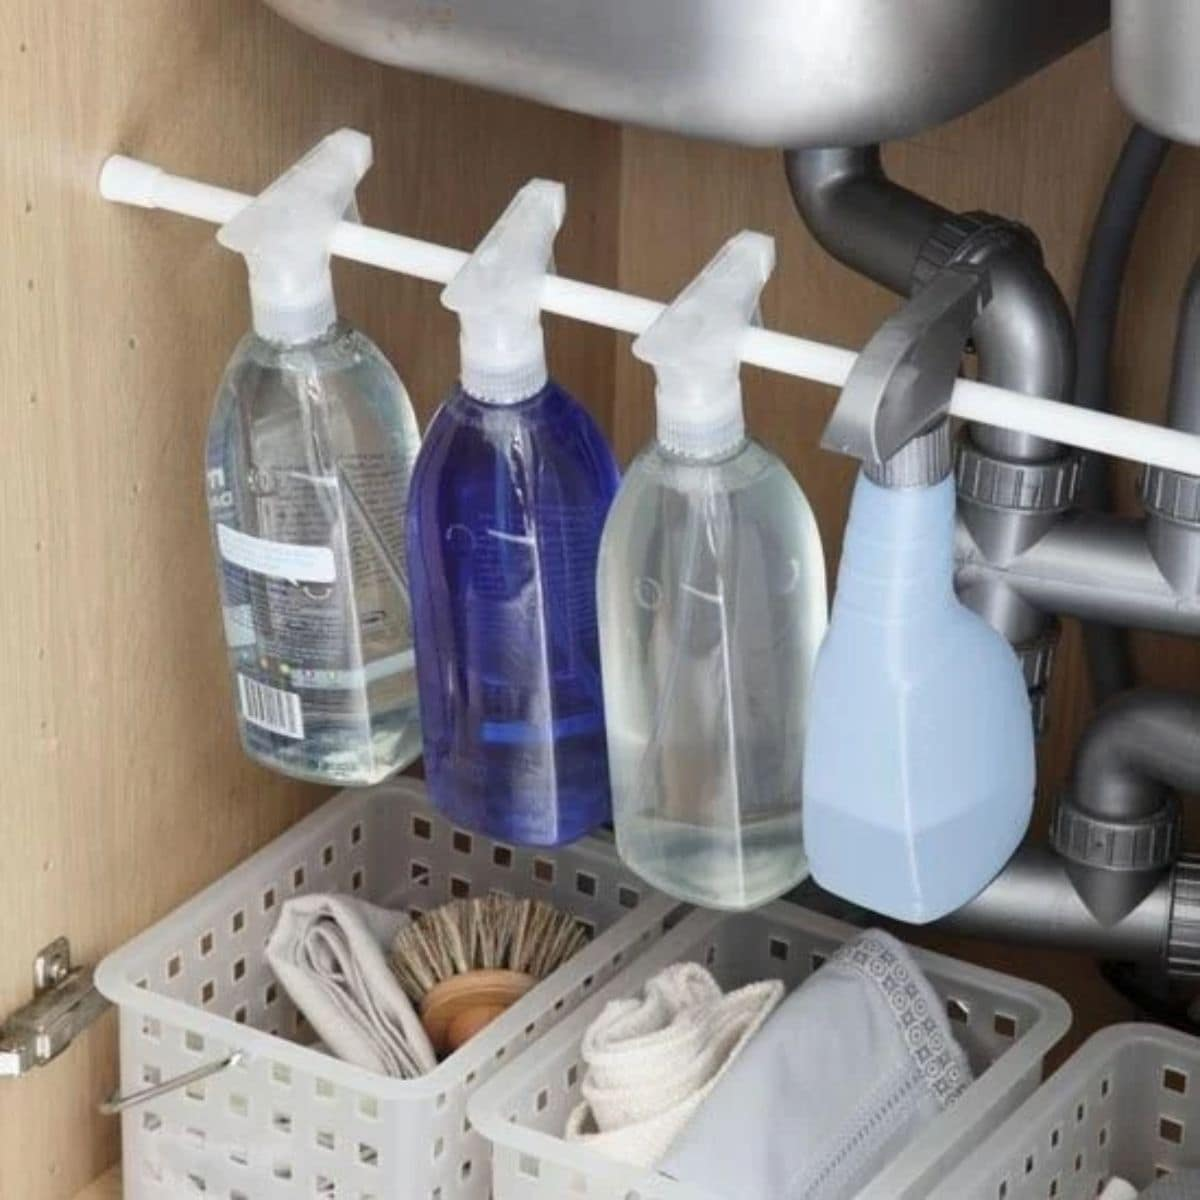 under the kitchen sink a tension rod has been fixed just under a stainless steel bowl. Hanging on teh rod are cleaning product bottles. Underneath are white baskets for other cleaning supplies